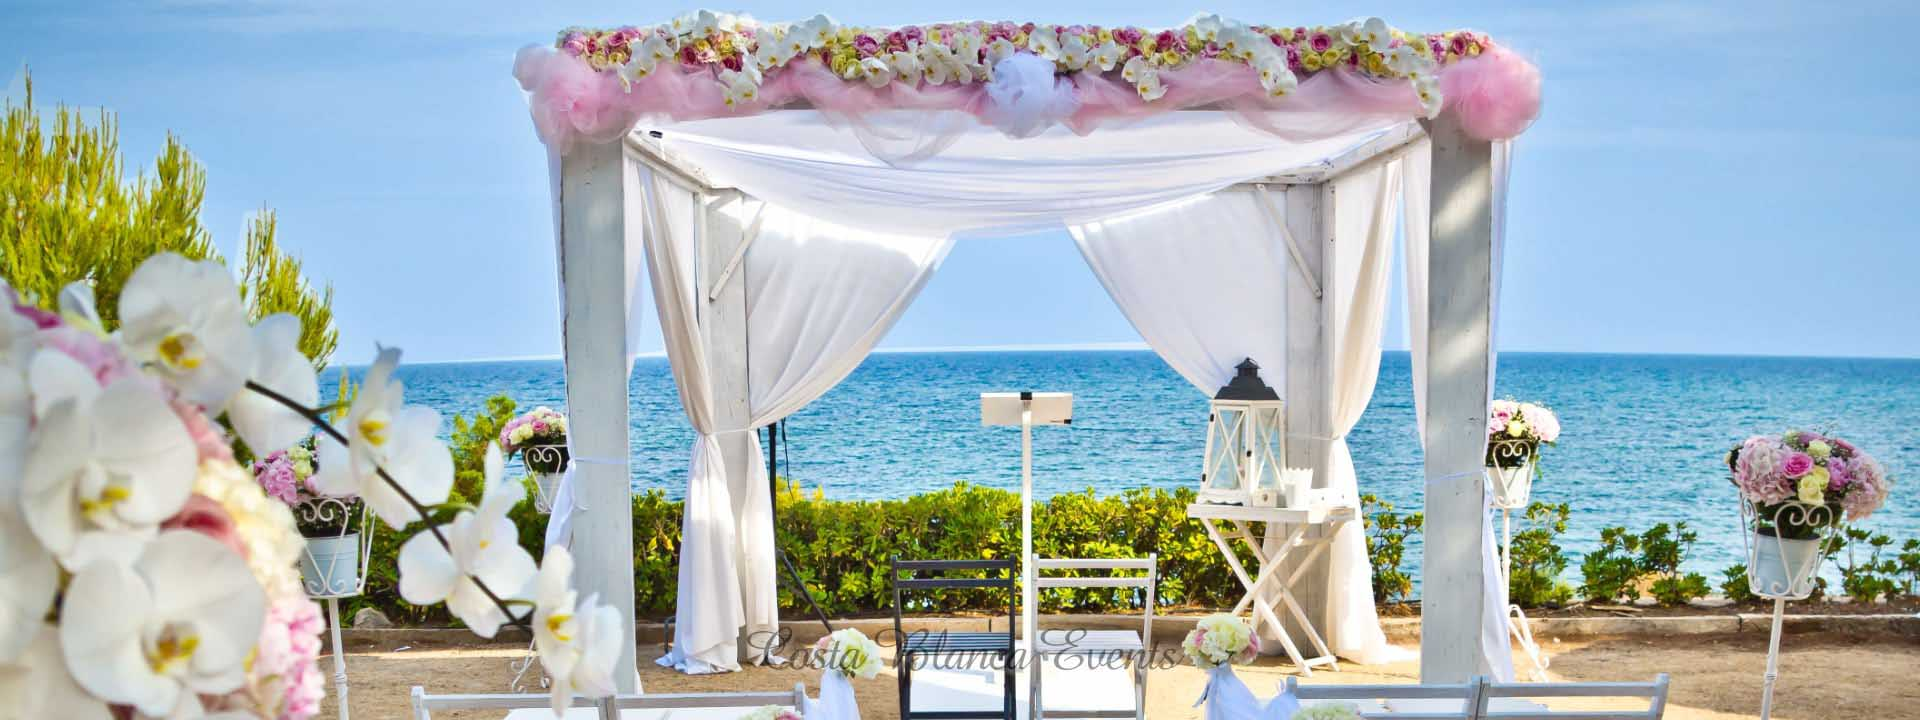 Weddings in Spain packages prices - my perfect wedding in Spain